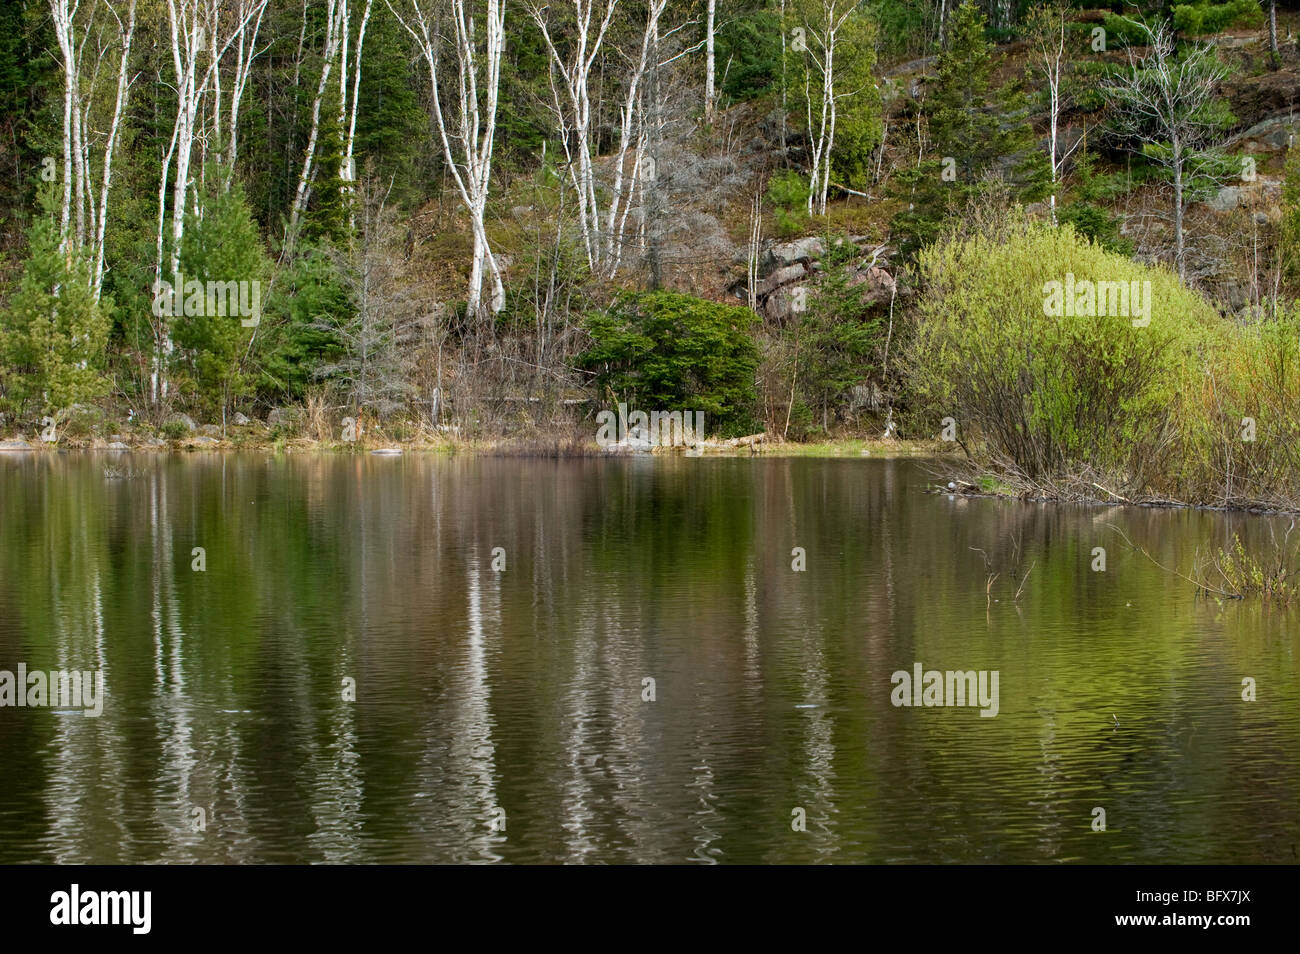 Willow reflections in spring in beaverpond water, Greater Sudbury, Ontario, Canada - Stock Image